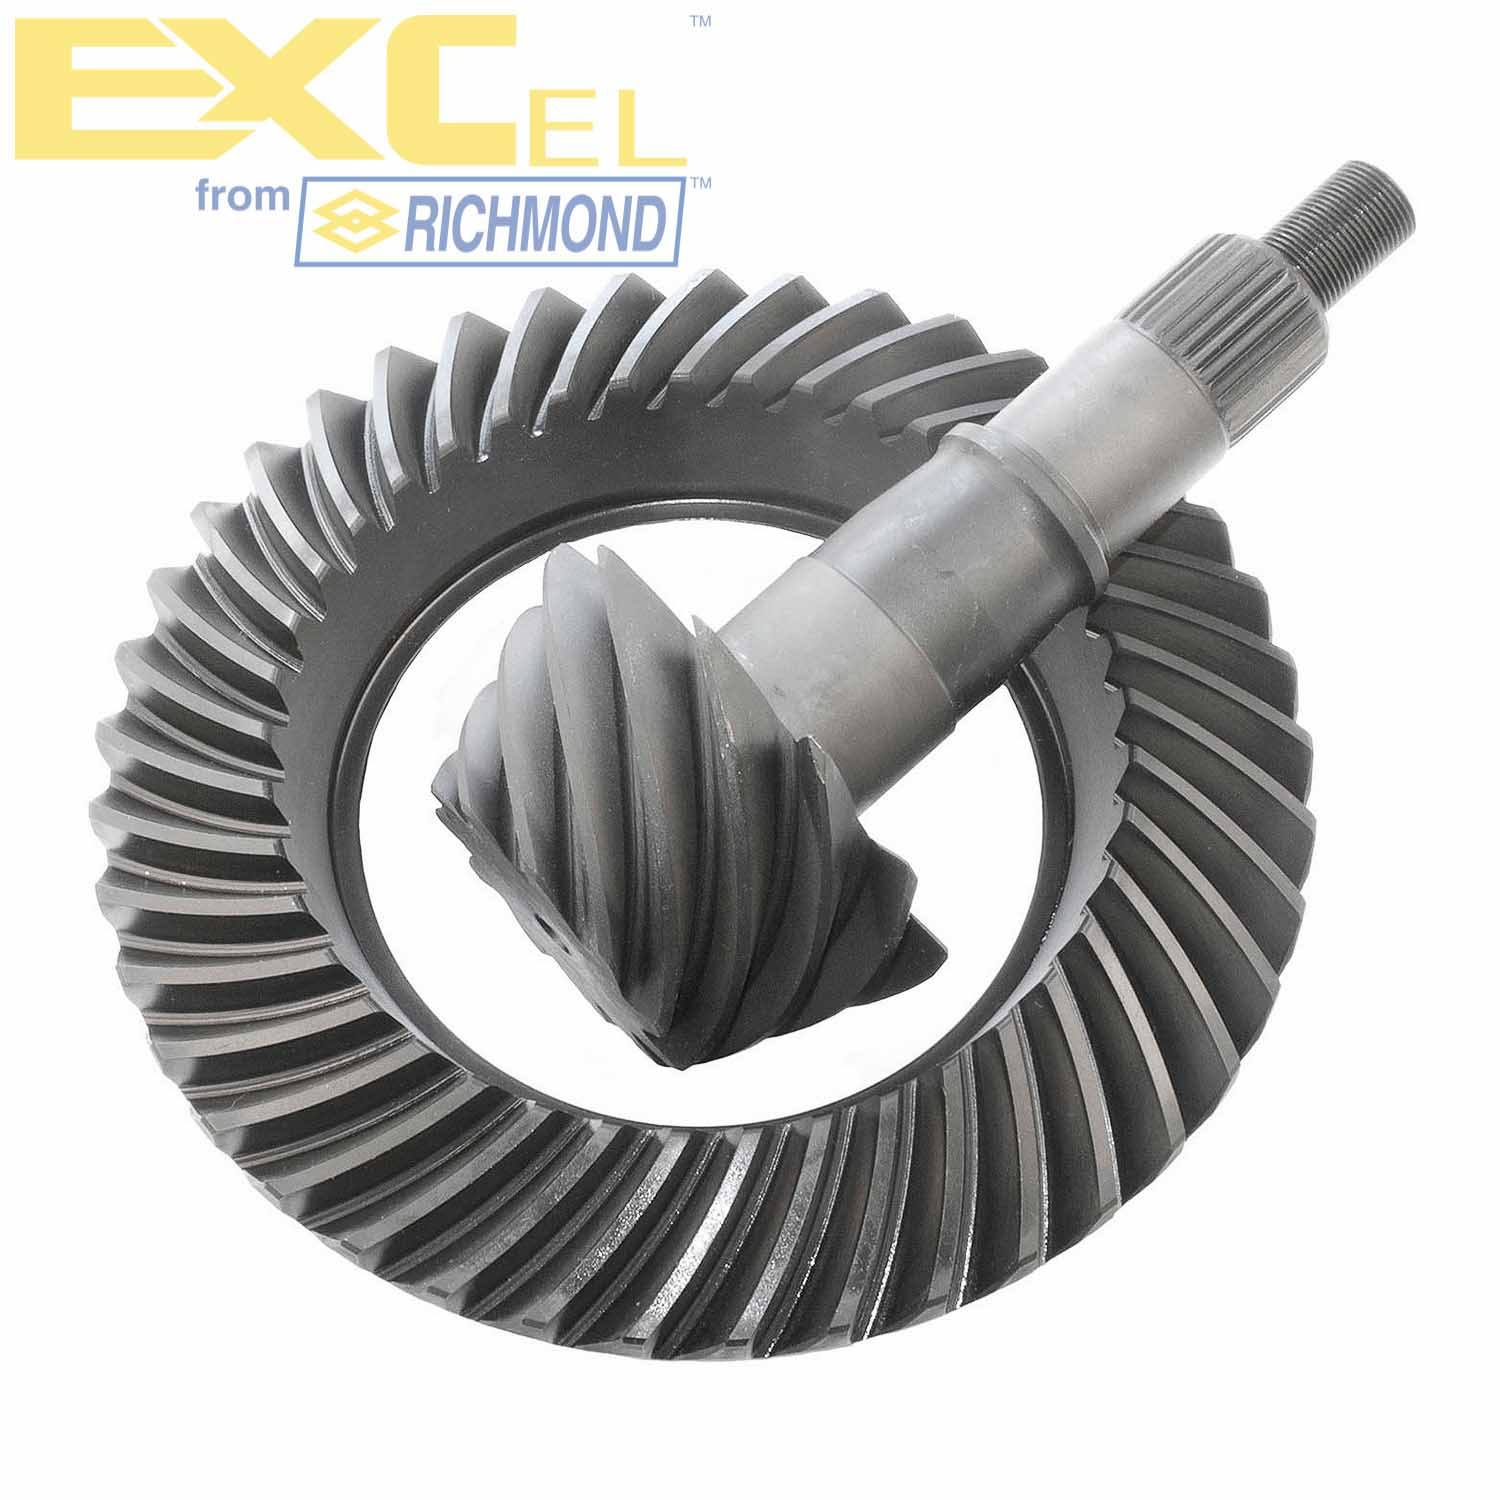 Ford 8.8 inch 10 Bolt Richmond Excel Ring and Pinion Gear Set